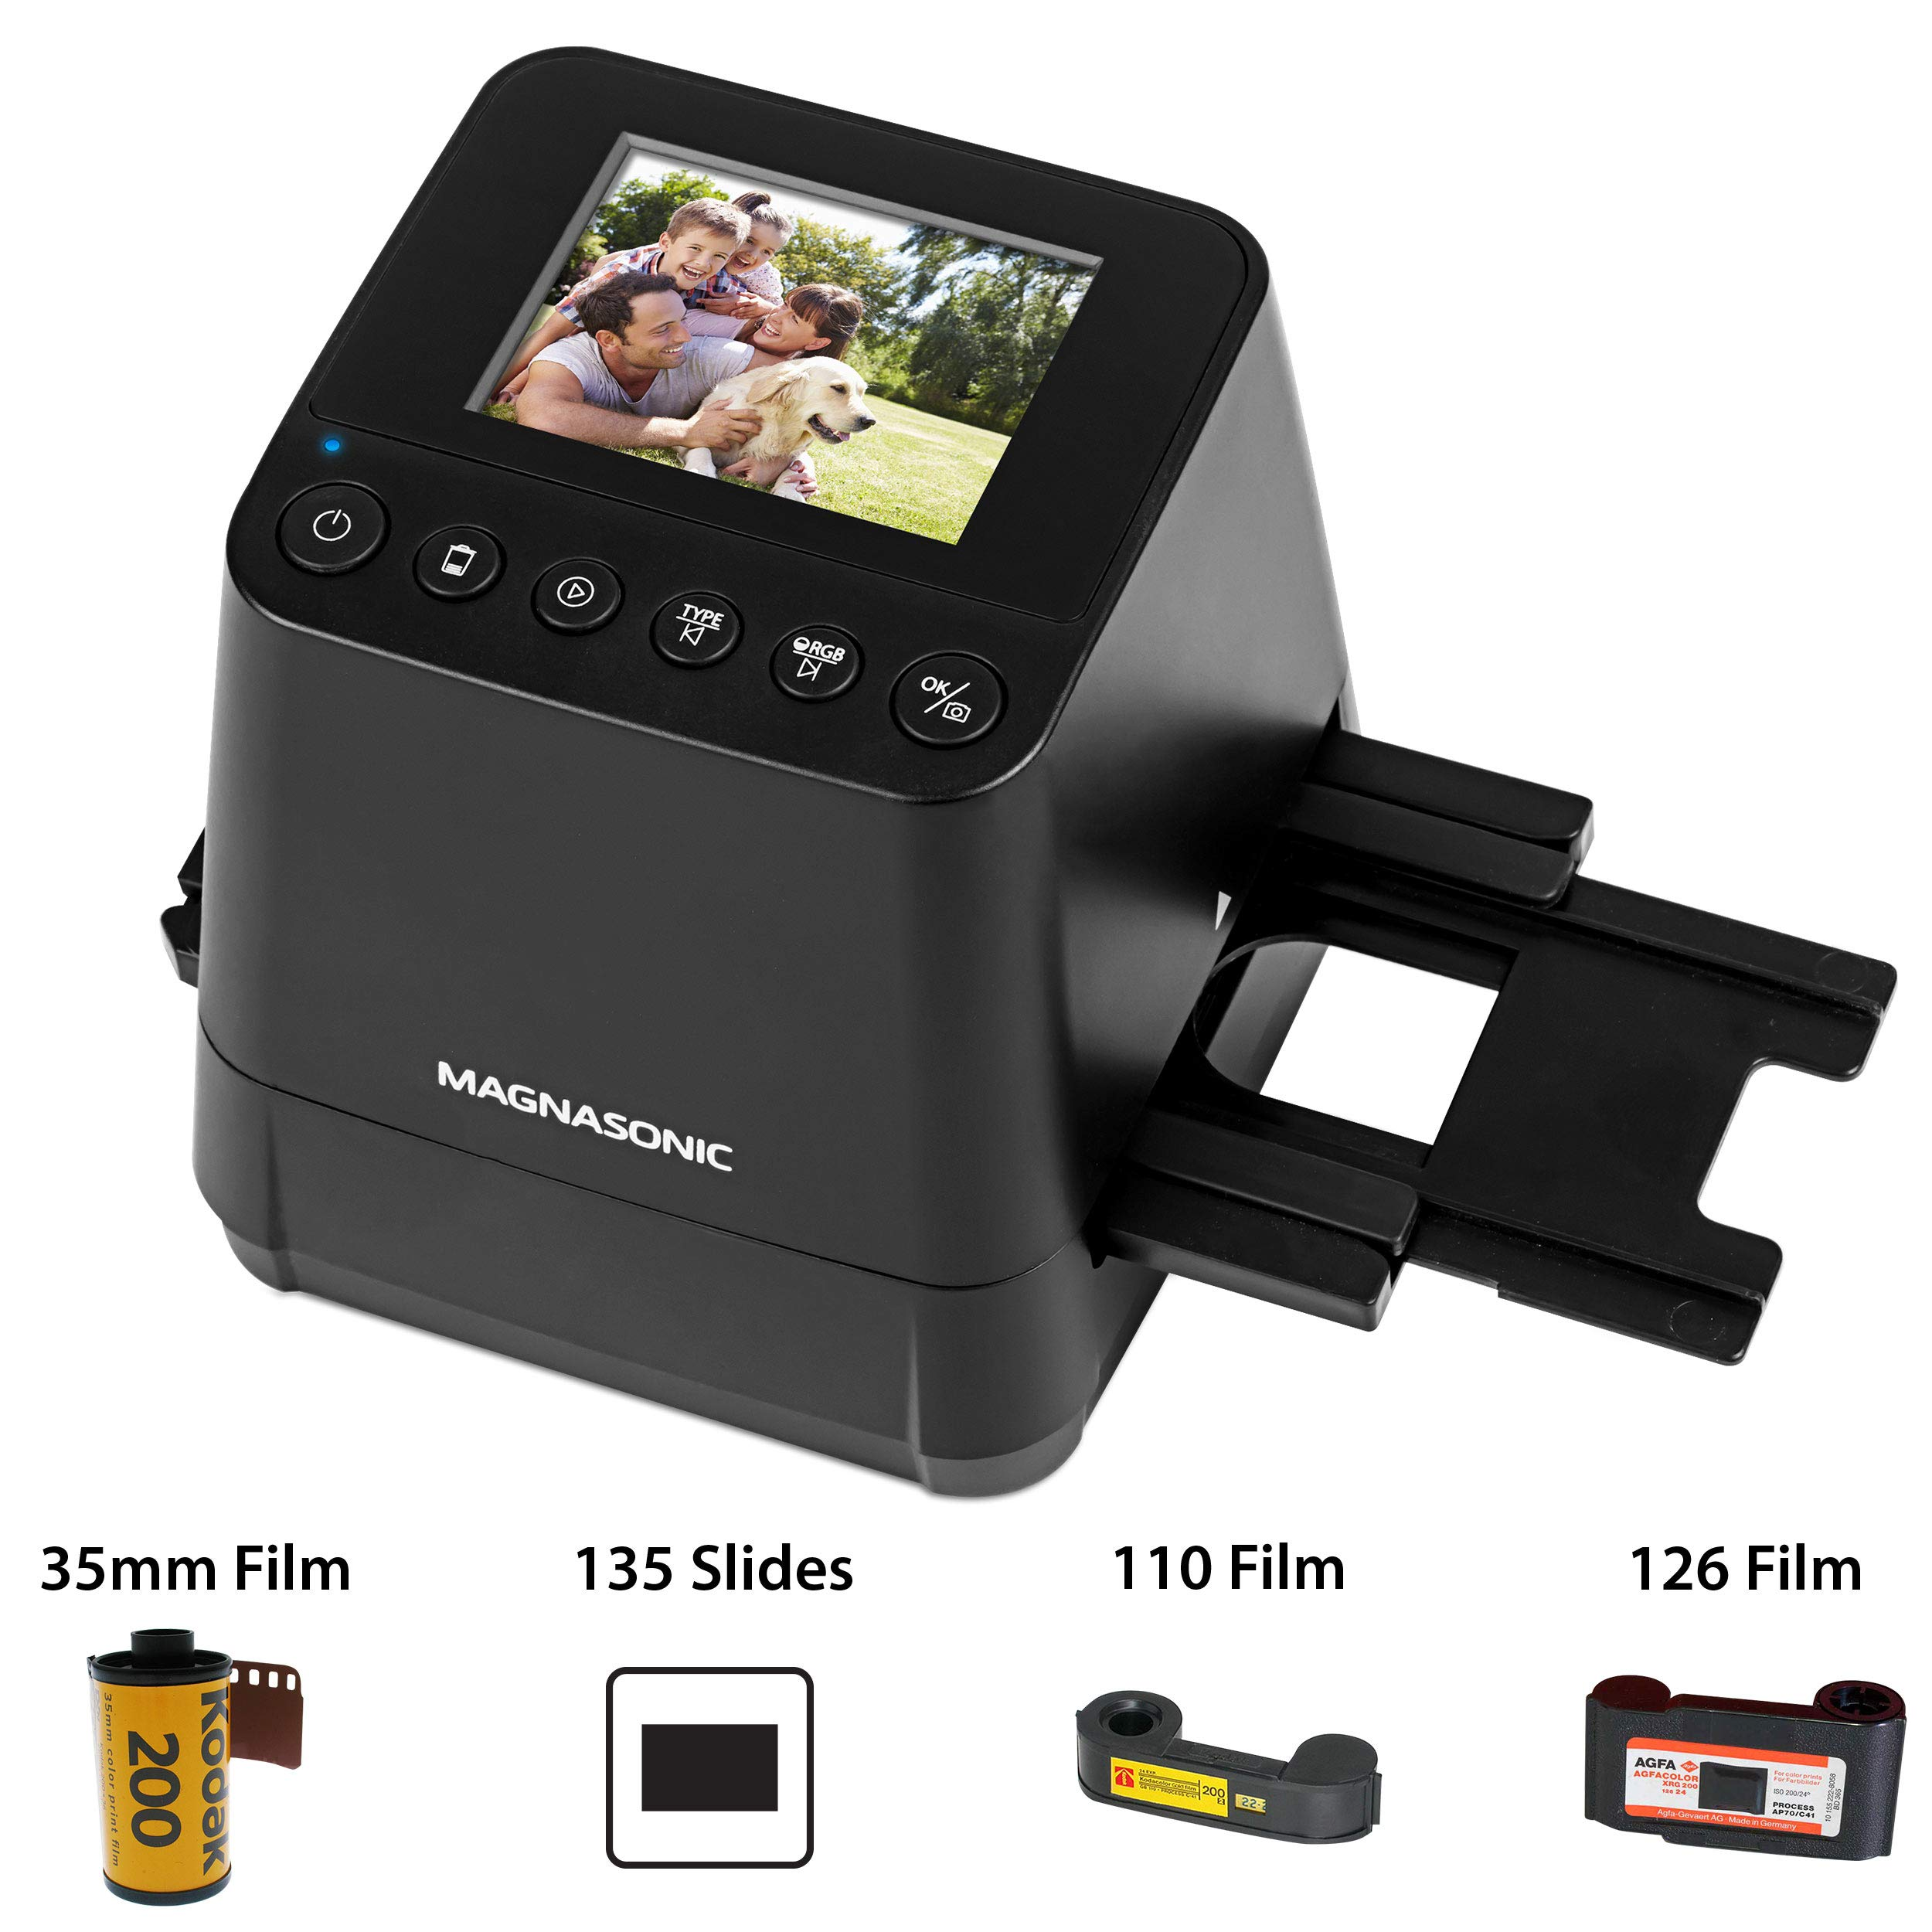 Magnasonic All-In-One Slide & Film Scanner, High Resolution 23MP, Converts 35mm/110/126 Negatives & 135 Slides into Digital Photos, Vibrant 2.4'' LCD Screen, Built-In Memory, High Speed Scanning (FS51)